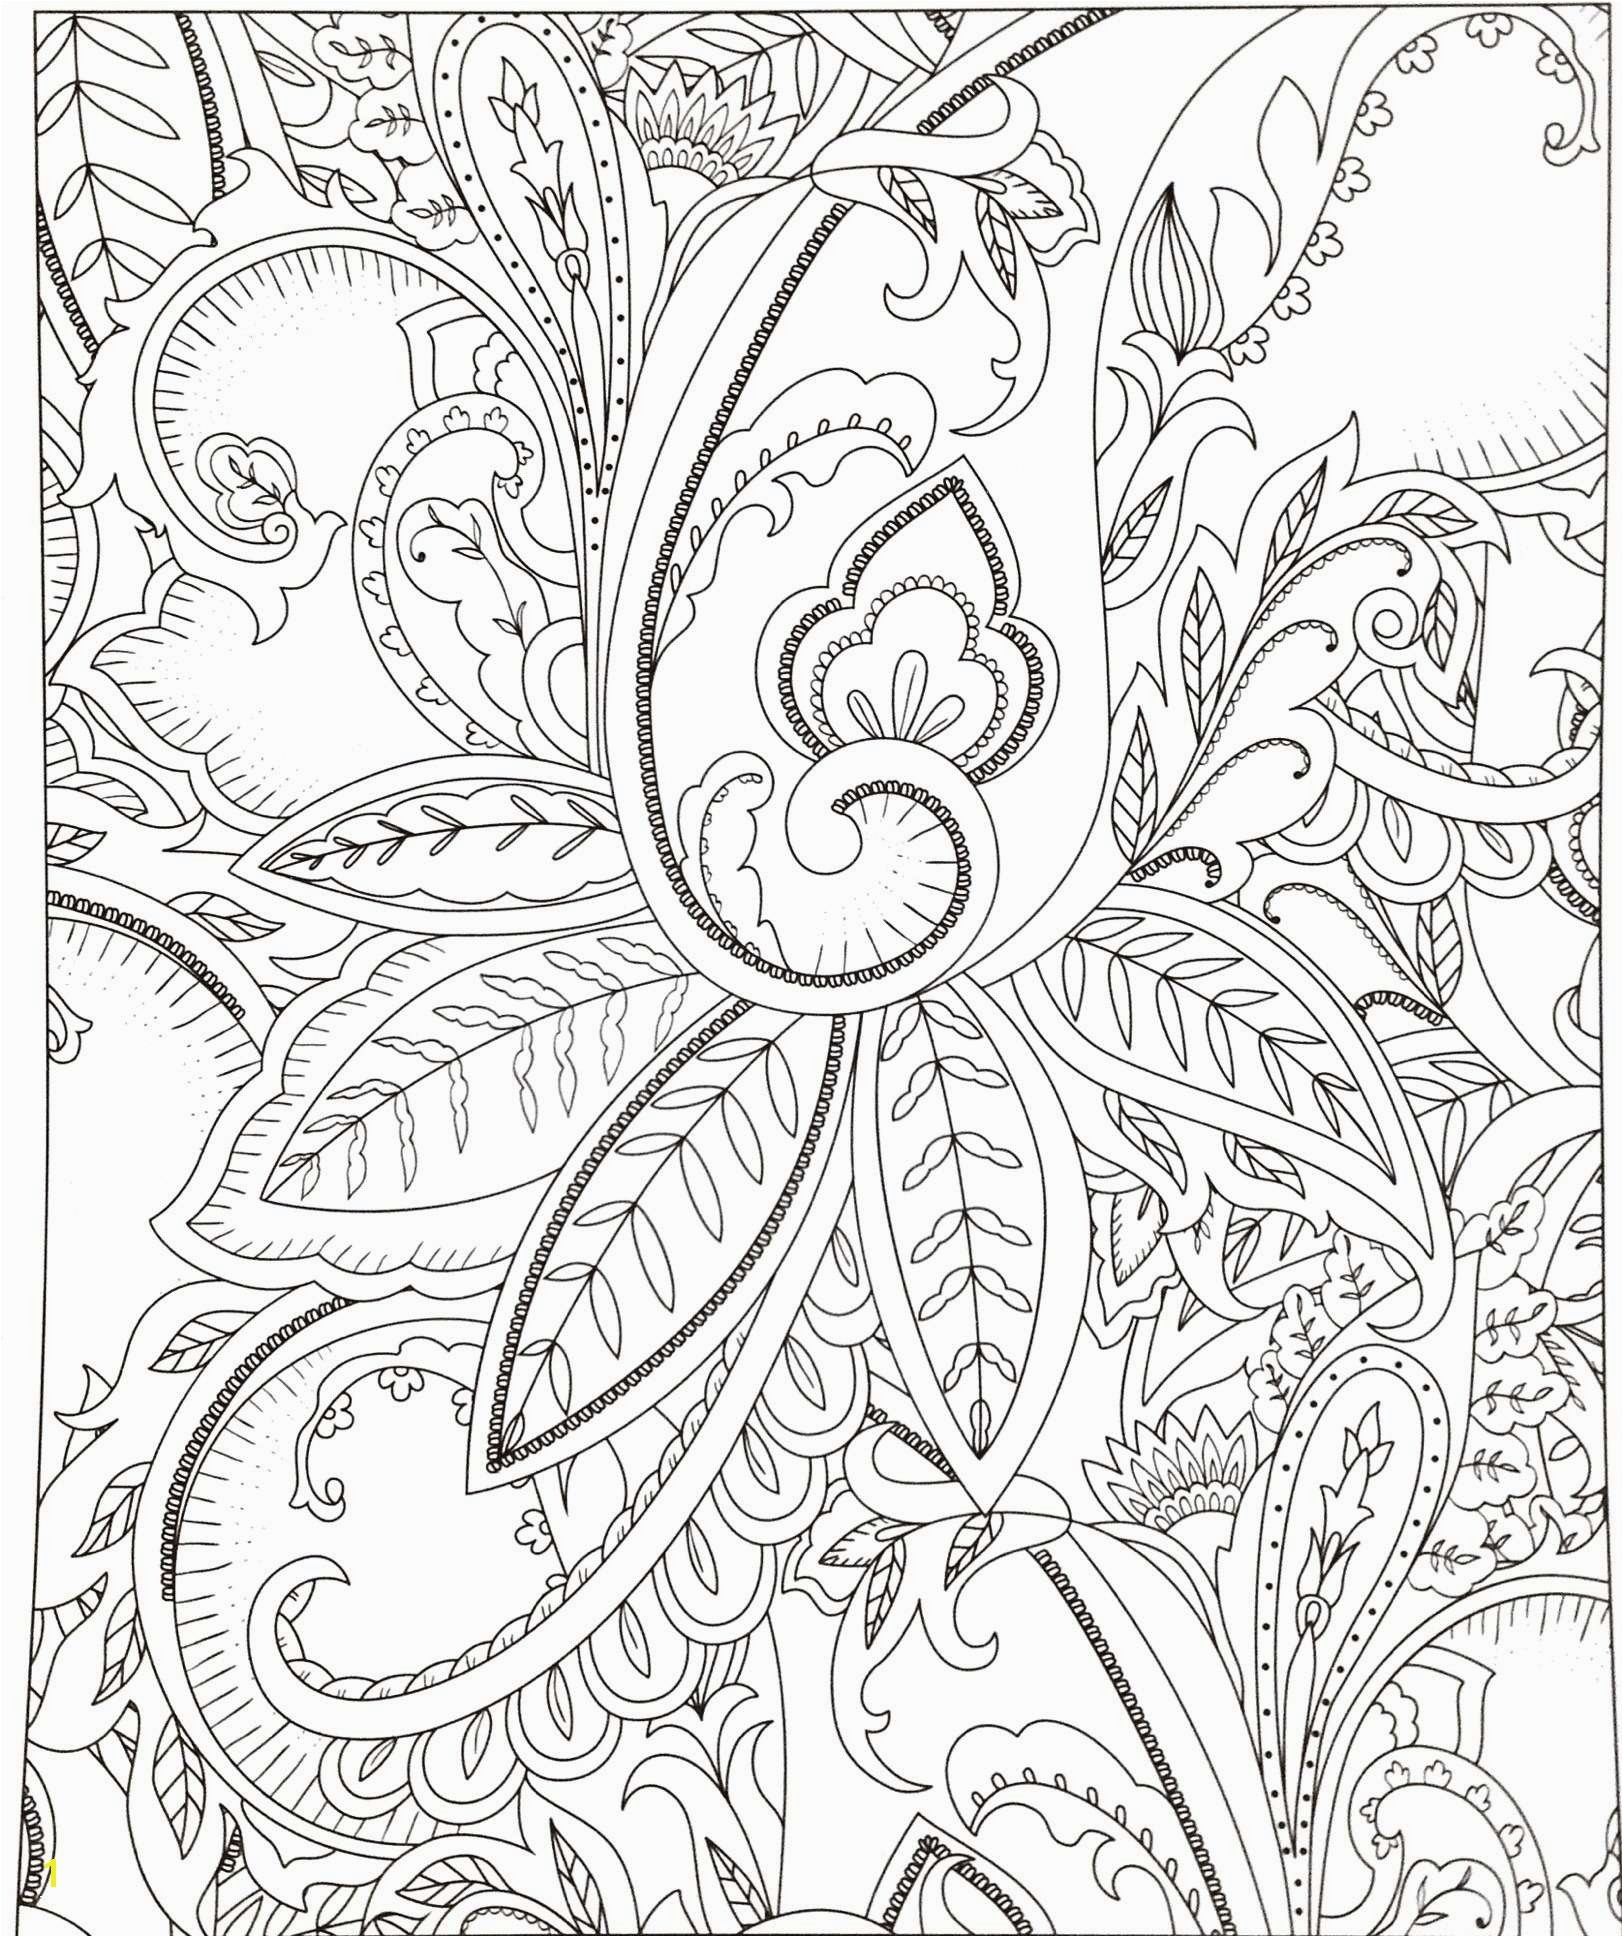 Betta Fish Coloring Pages Hard Fish Coloring Pages Betta Fish Coloring Pages New Hard Fish